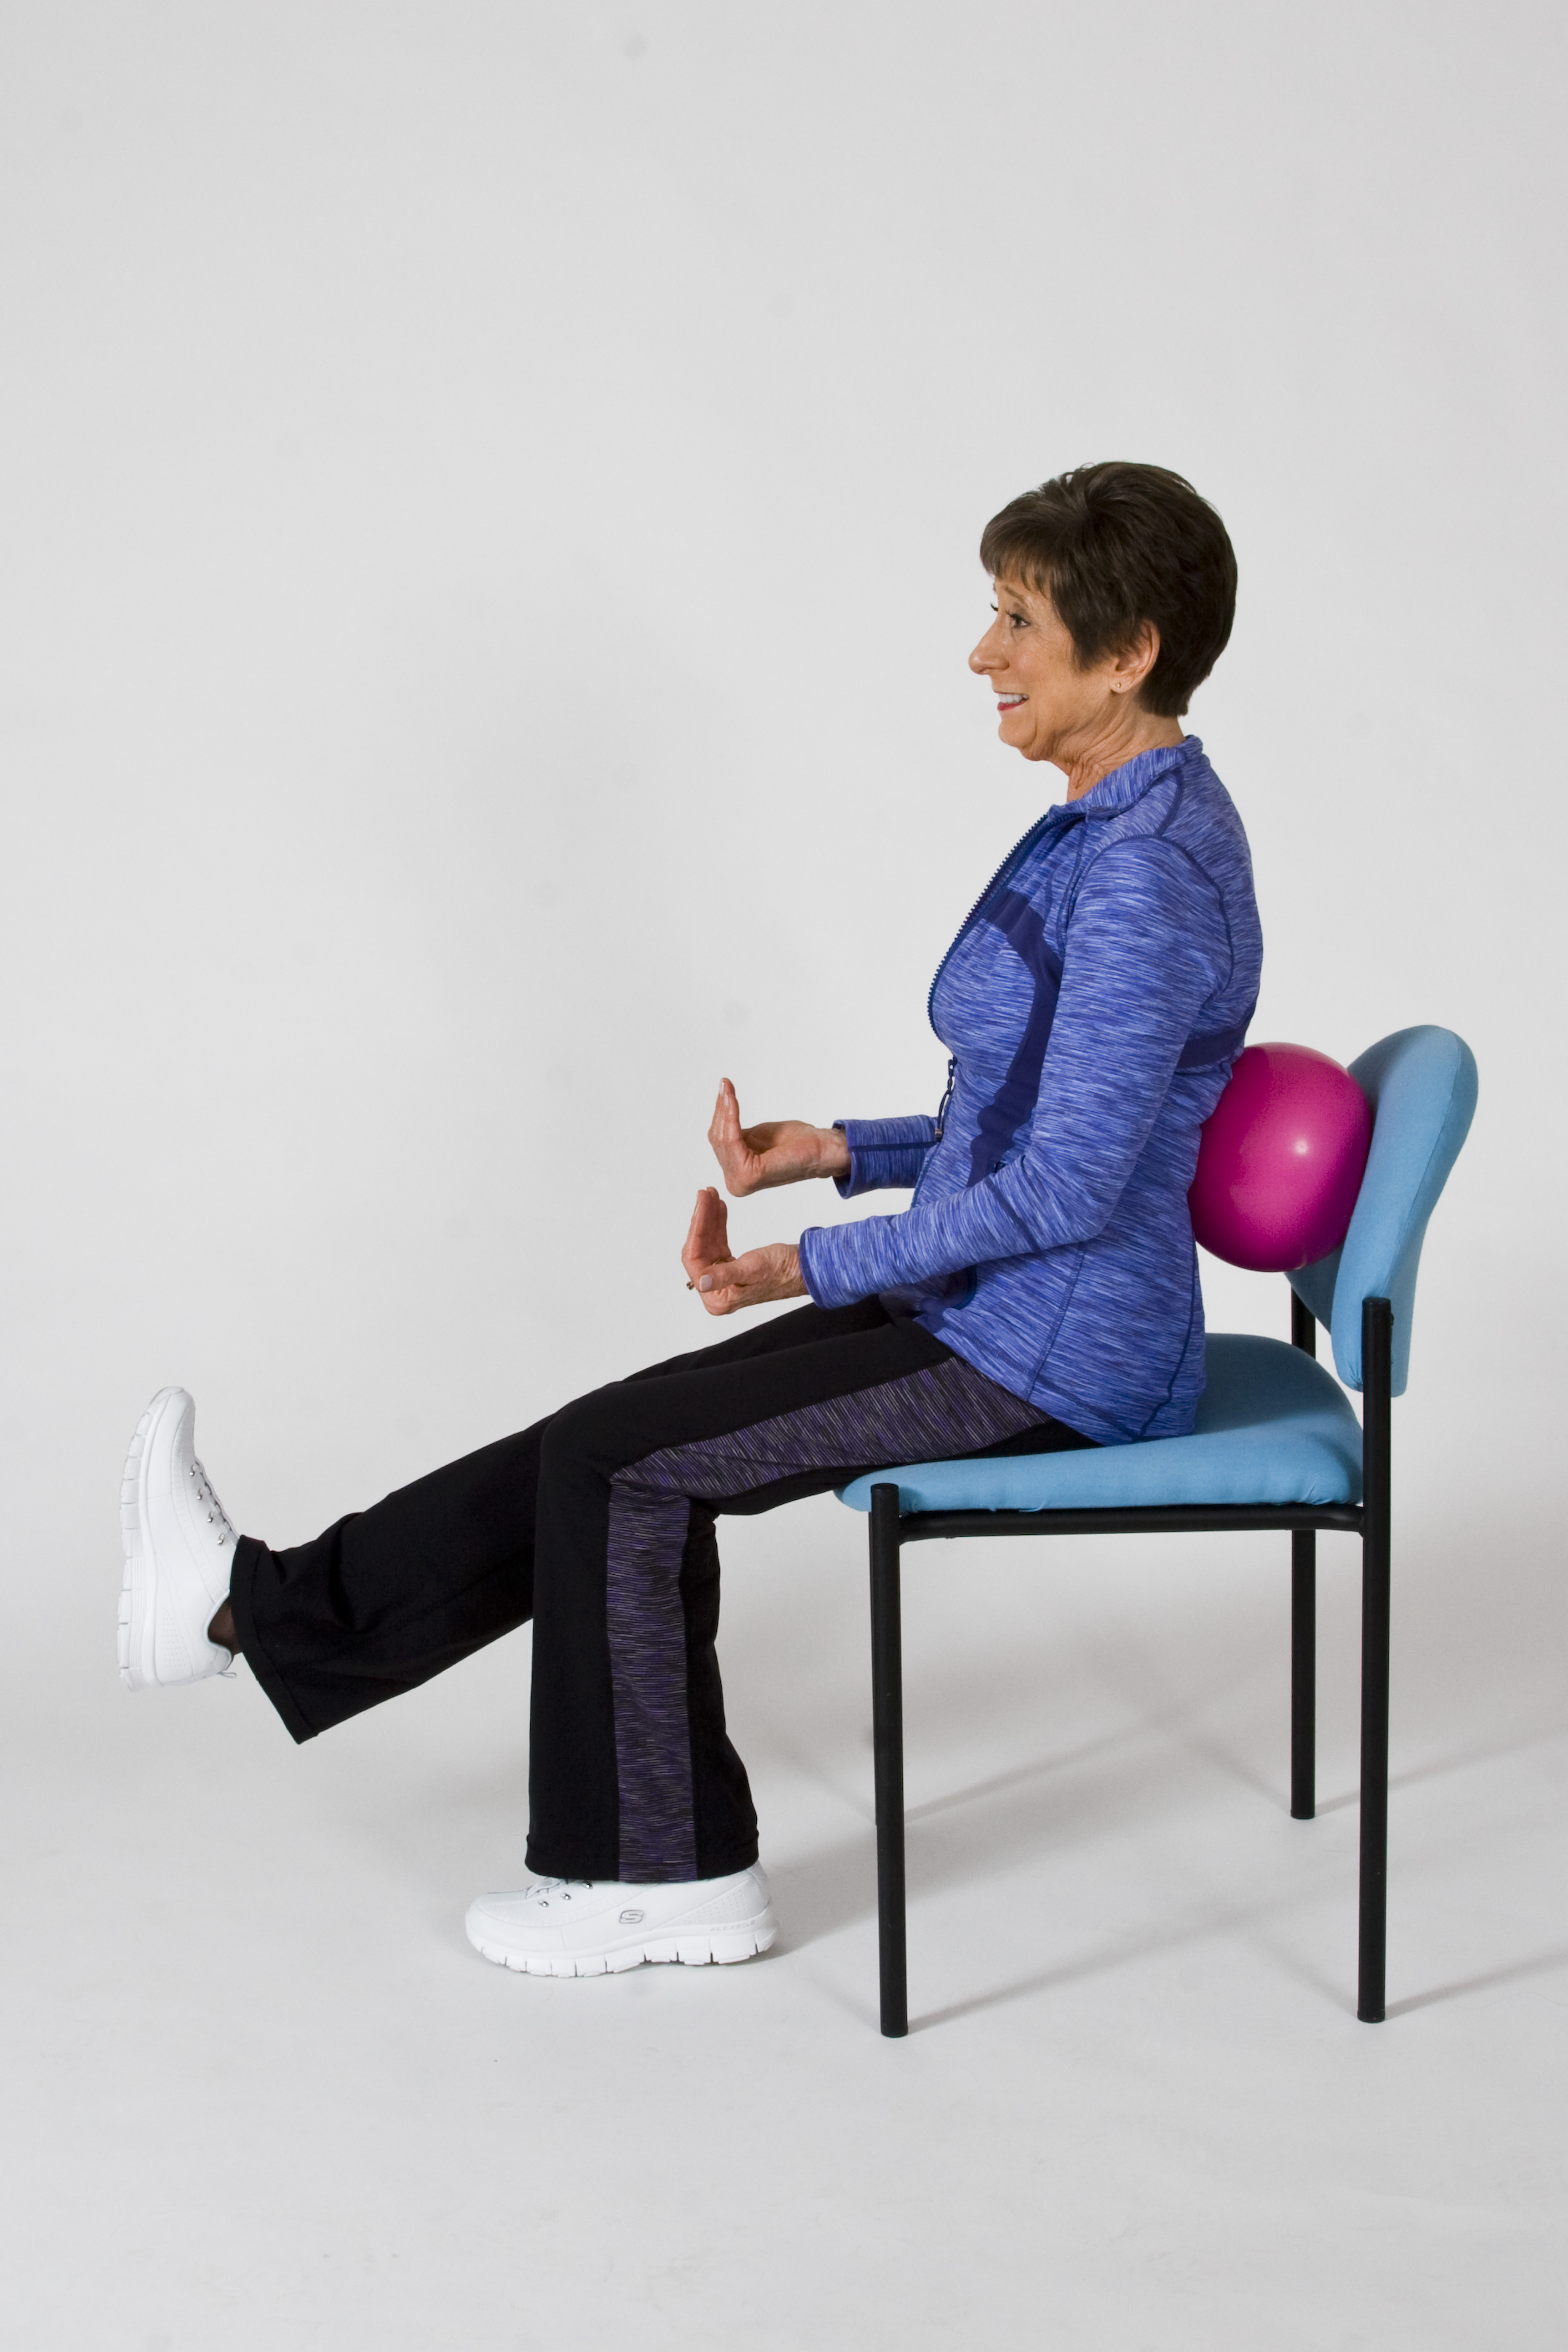 Calf Stretch: Sit Toward The Front Of The Chair. For This Exercise You May  Want To Put A Ball Or Pillow Behind Your Back To Support The Spine.